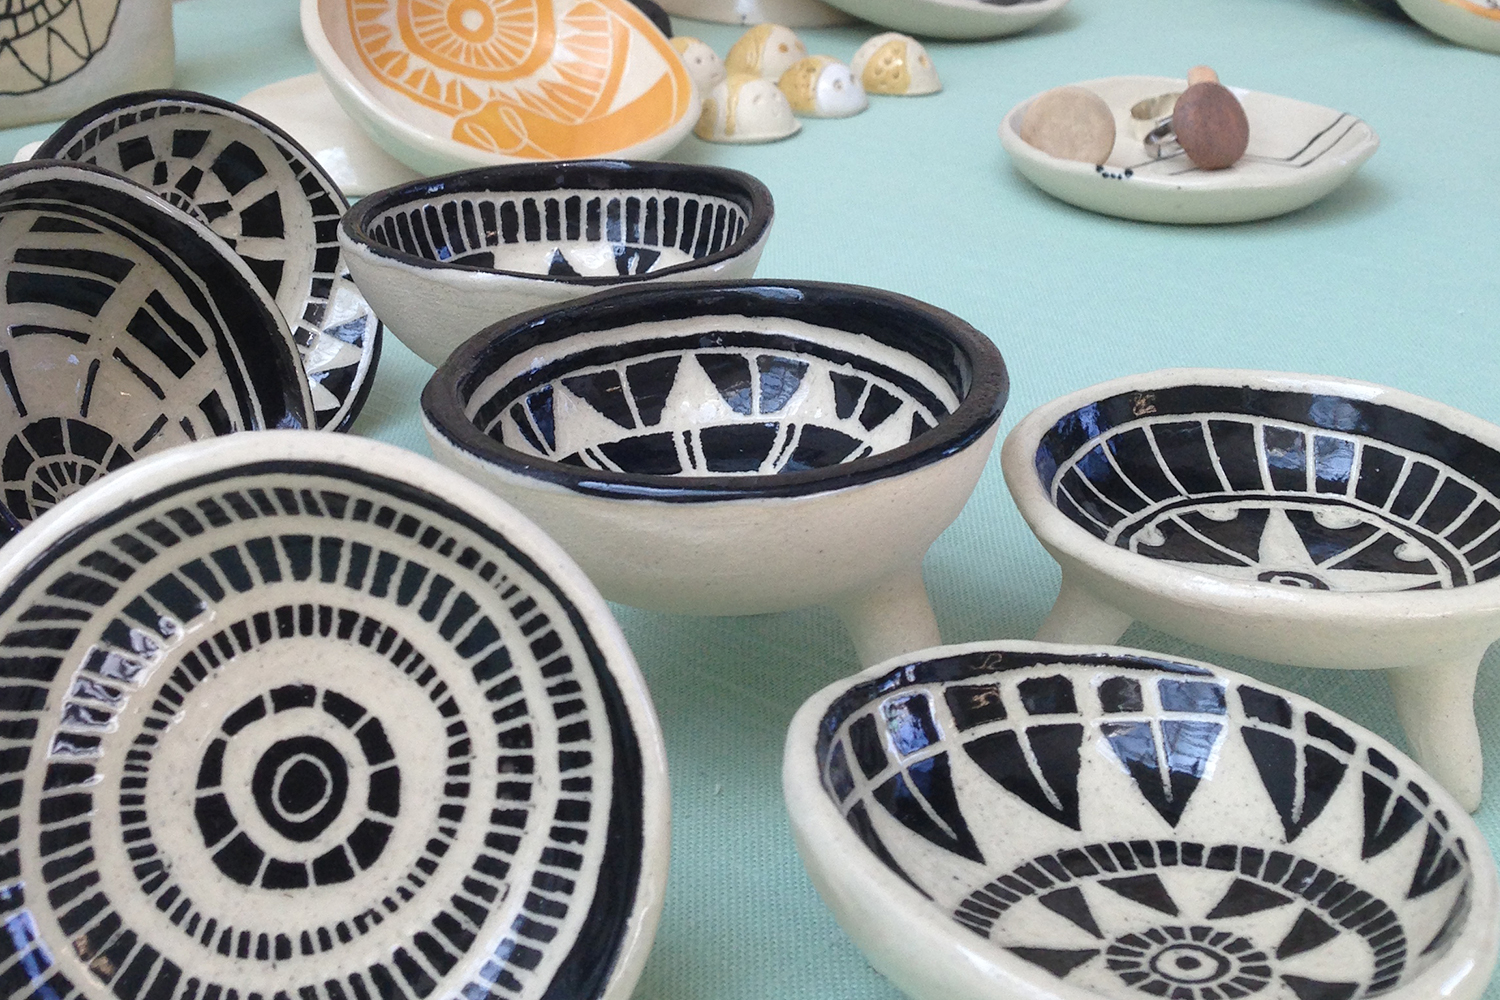 May 5th 12-6pm - 4400 Fox st. DenverCome enjoy Cinco de Mayo with us and choose your favorite color ceramic dish. Don't forget Mothers Day will be just around the corner.